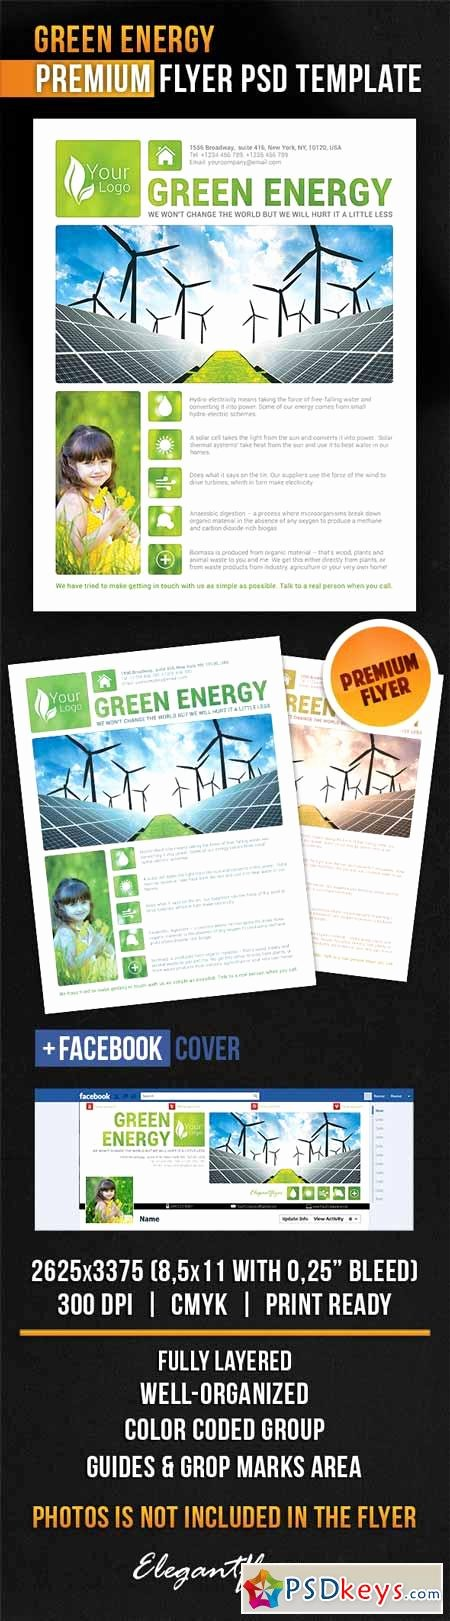 Facebook Cover Template Psd Luxury Green Energy – Flyer Psd Template Cover Free